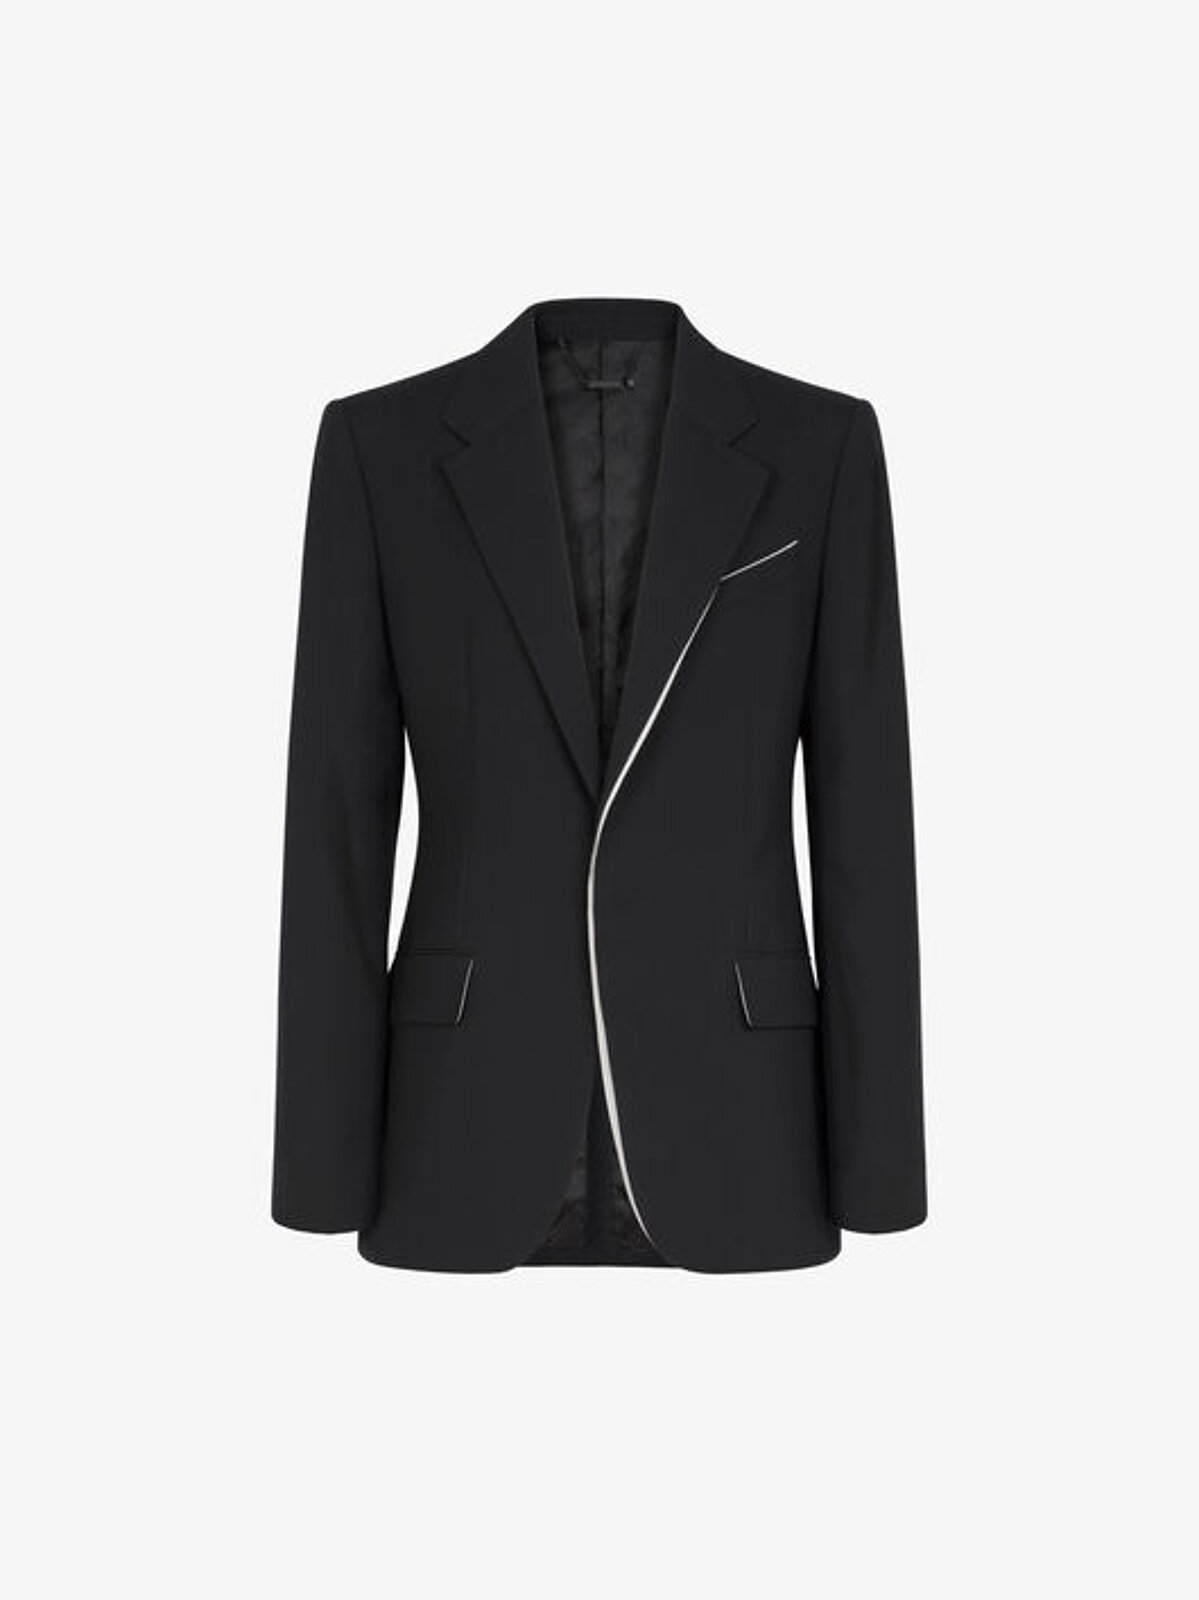 Wool jacket with contrasting details - Givenchy